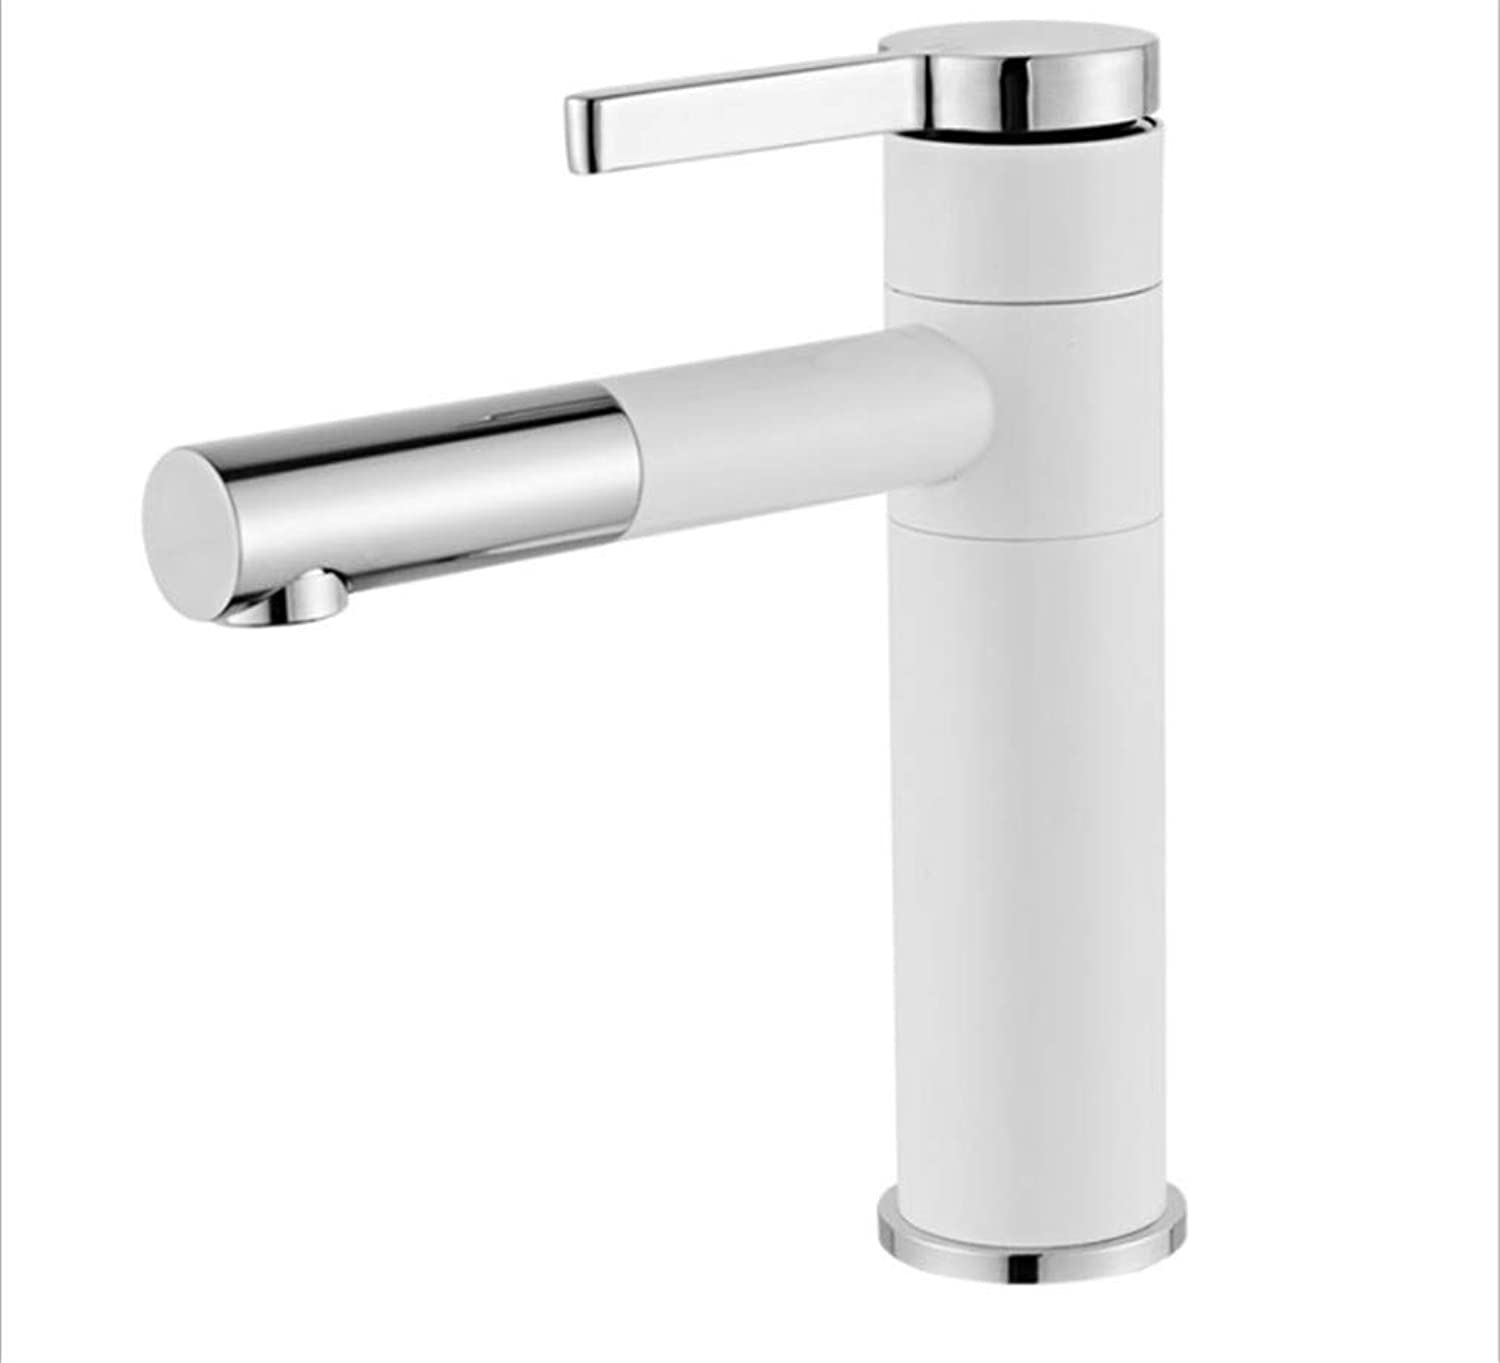 Kitchen Sink Taps Bathroom Taps Table Basin Basin Faucet Cold and Hot redary Washbasin Basin Toilet Bathroom Faucet